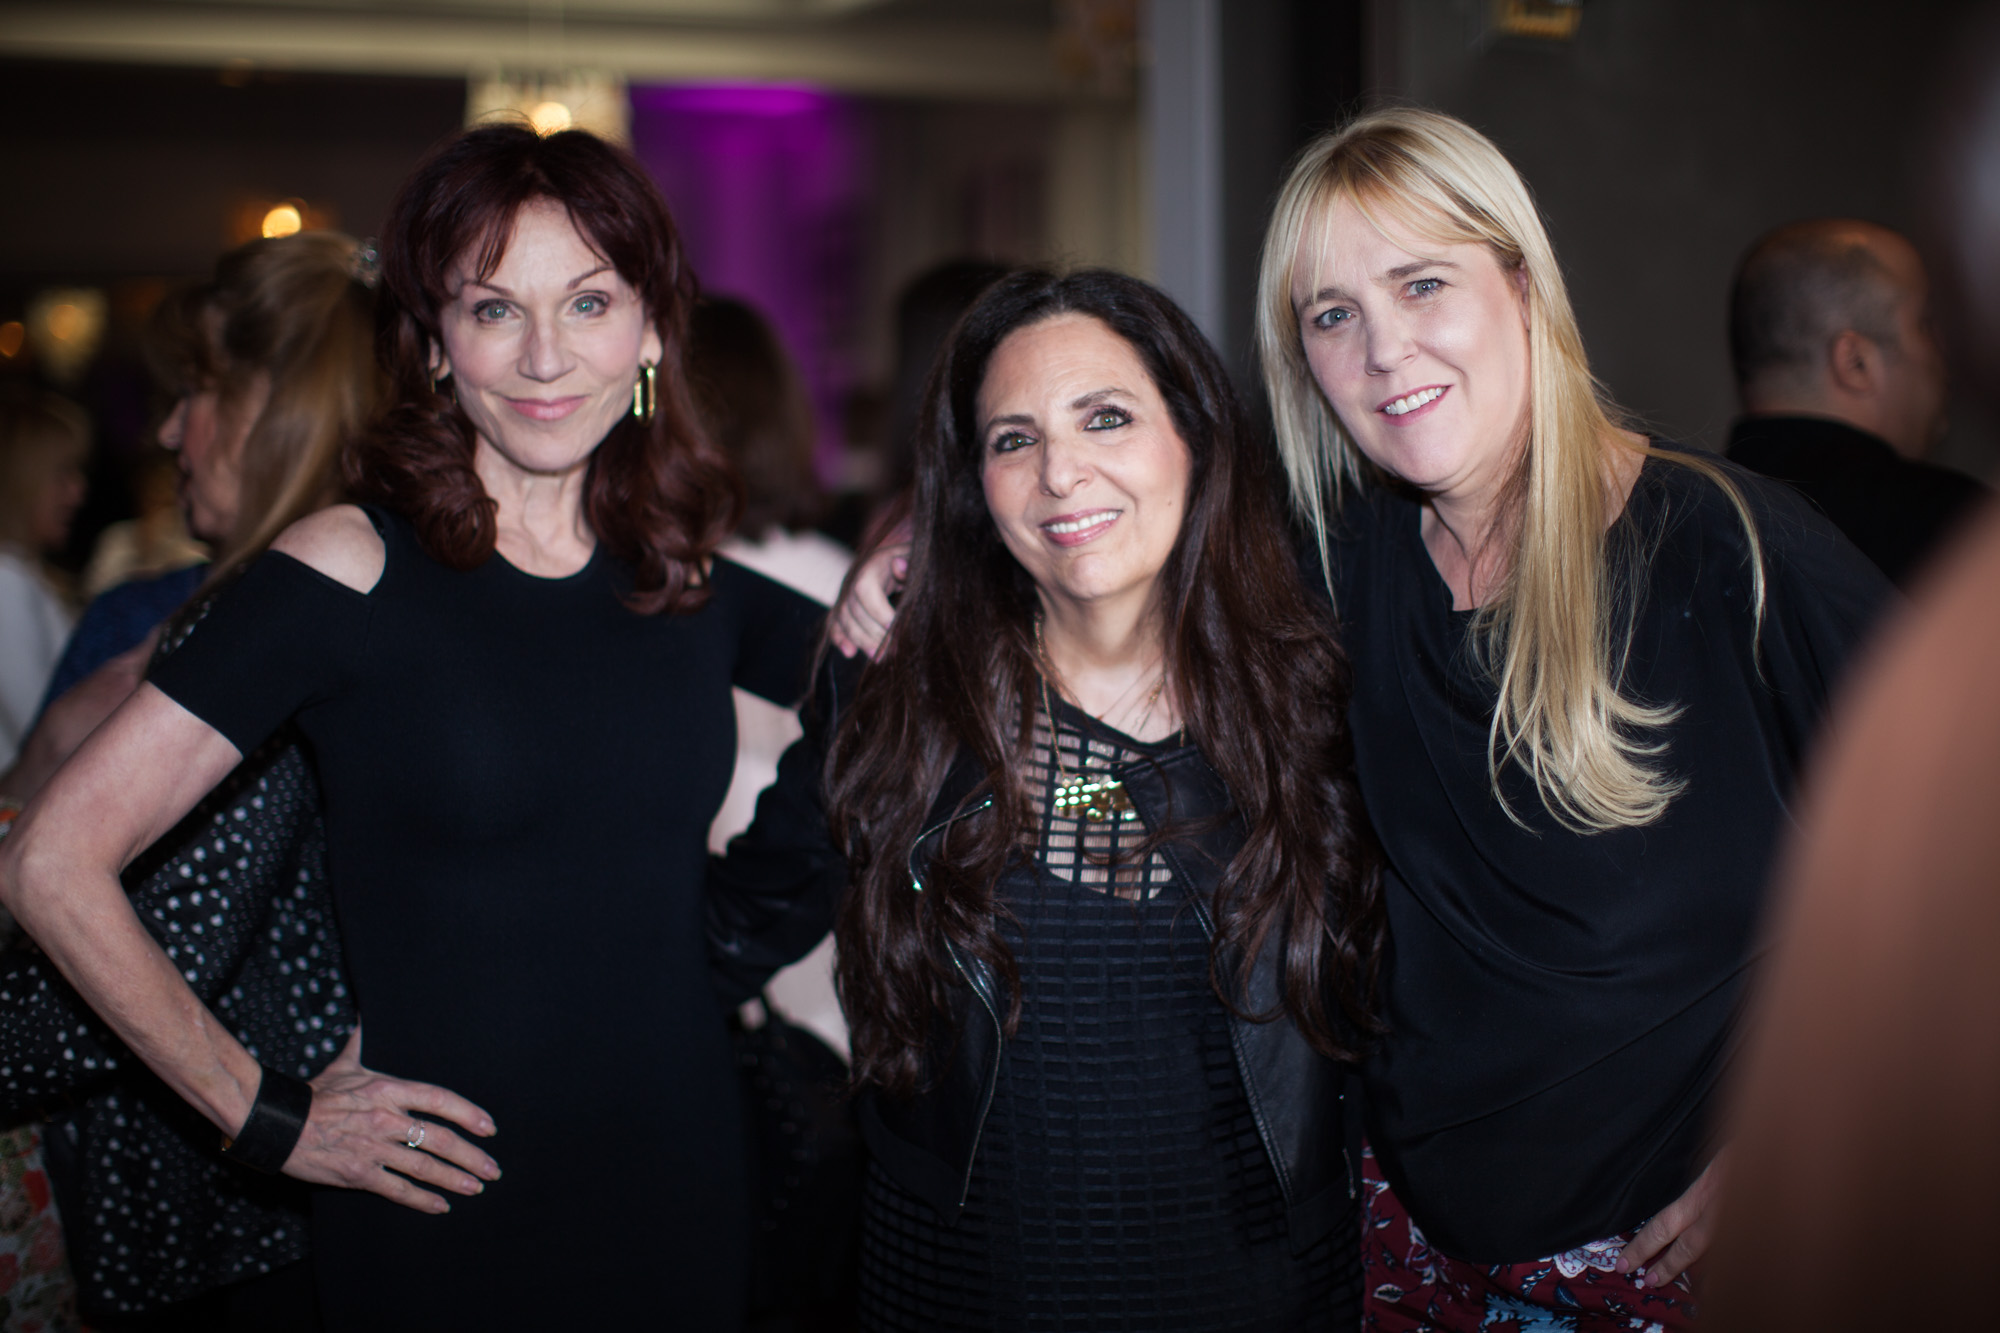 Cofounder Sharon Feldstein with Marilu Henner and Anne Josephson